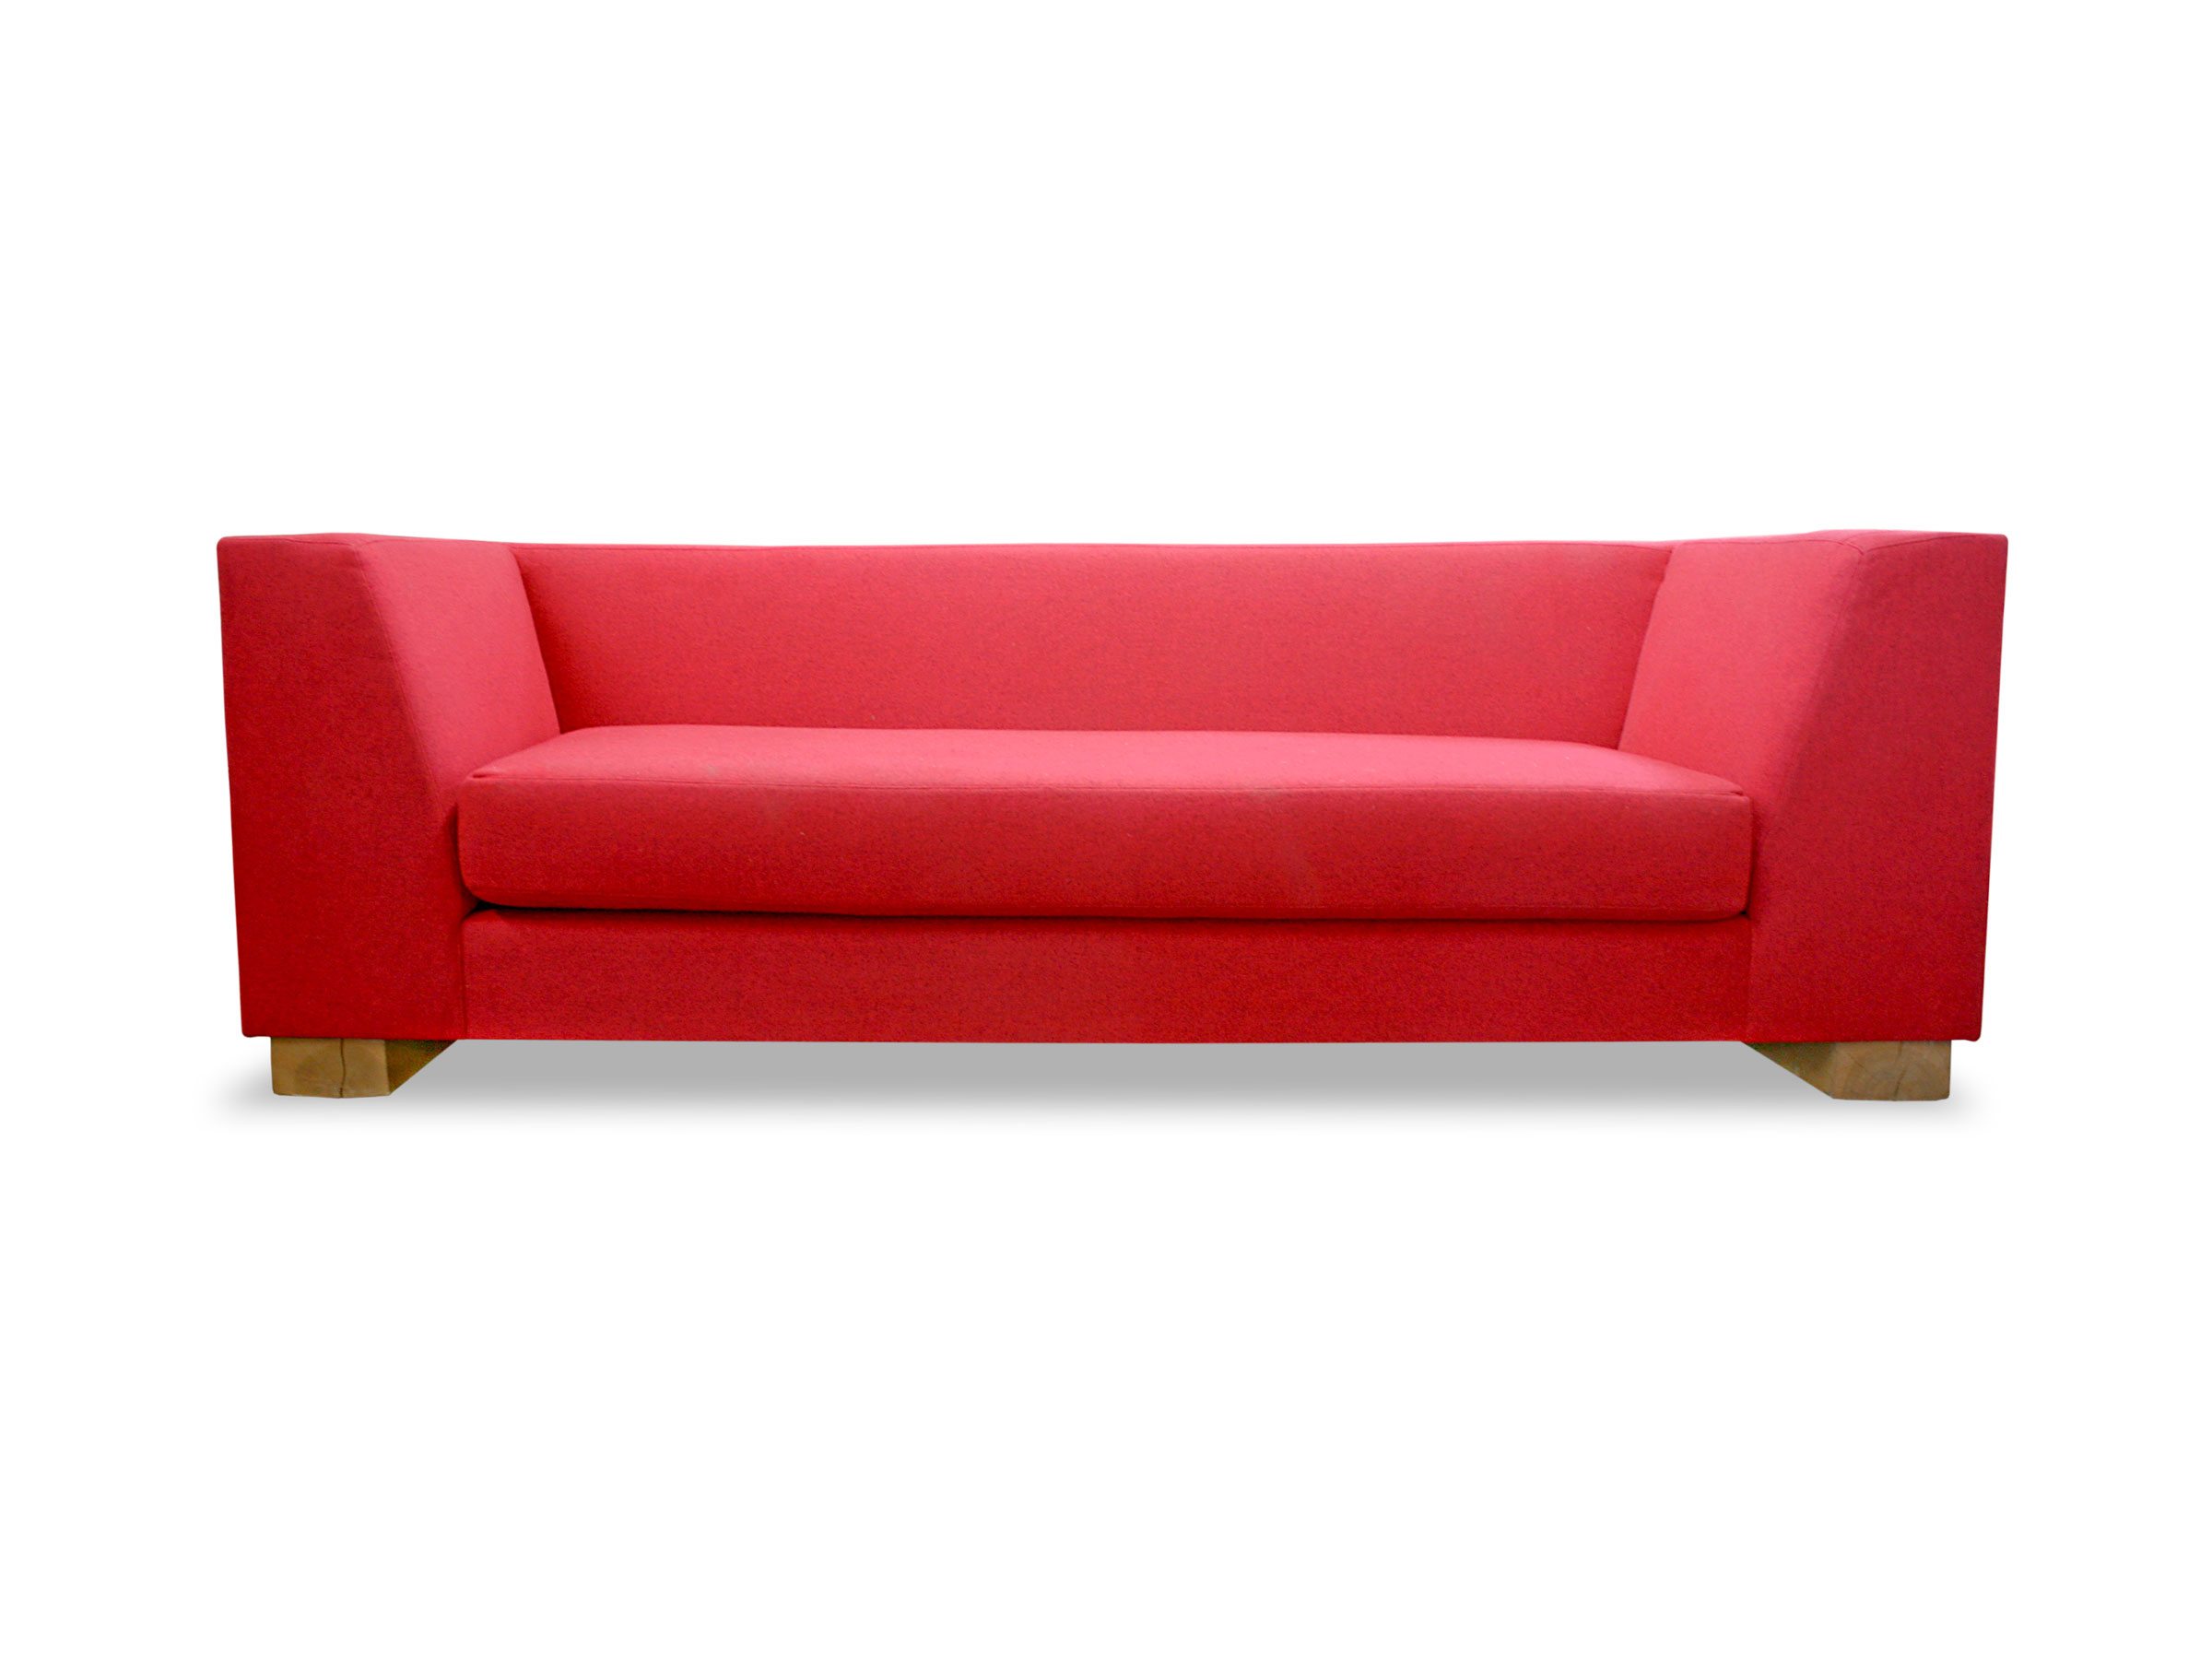 Custom Red Wool Sofa